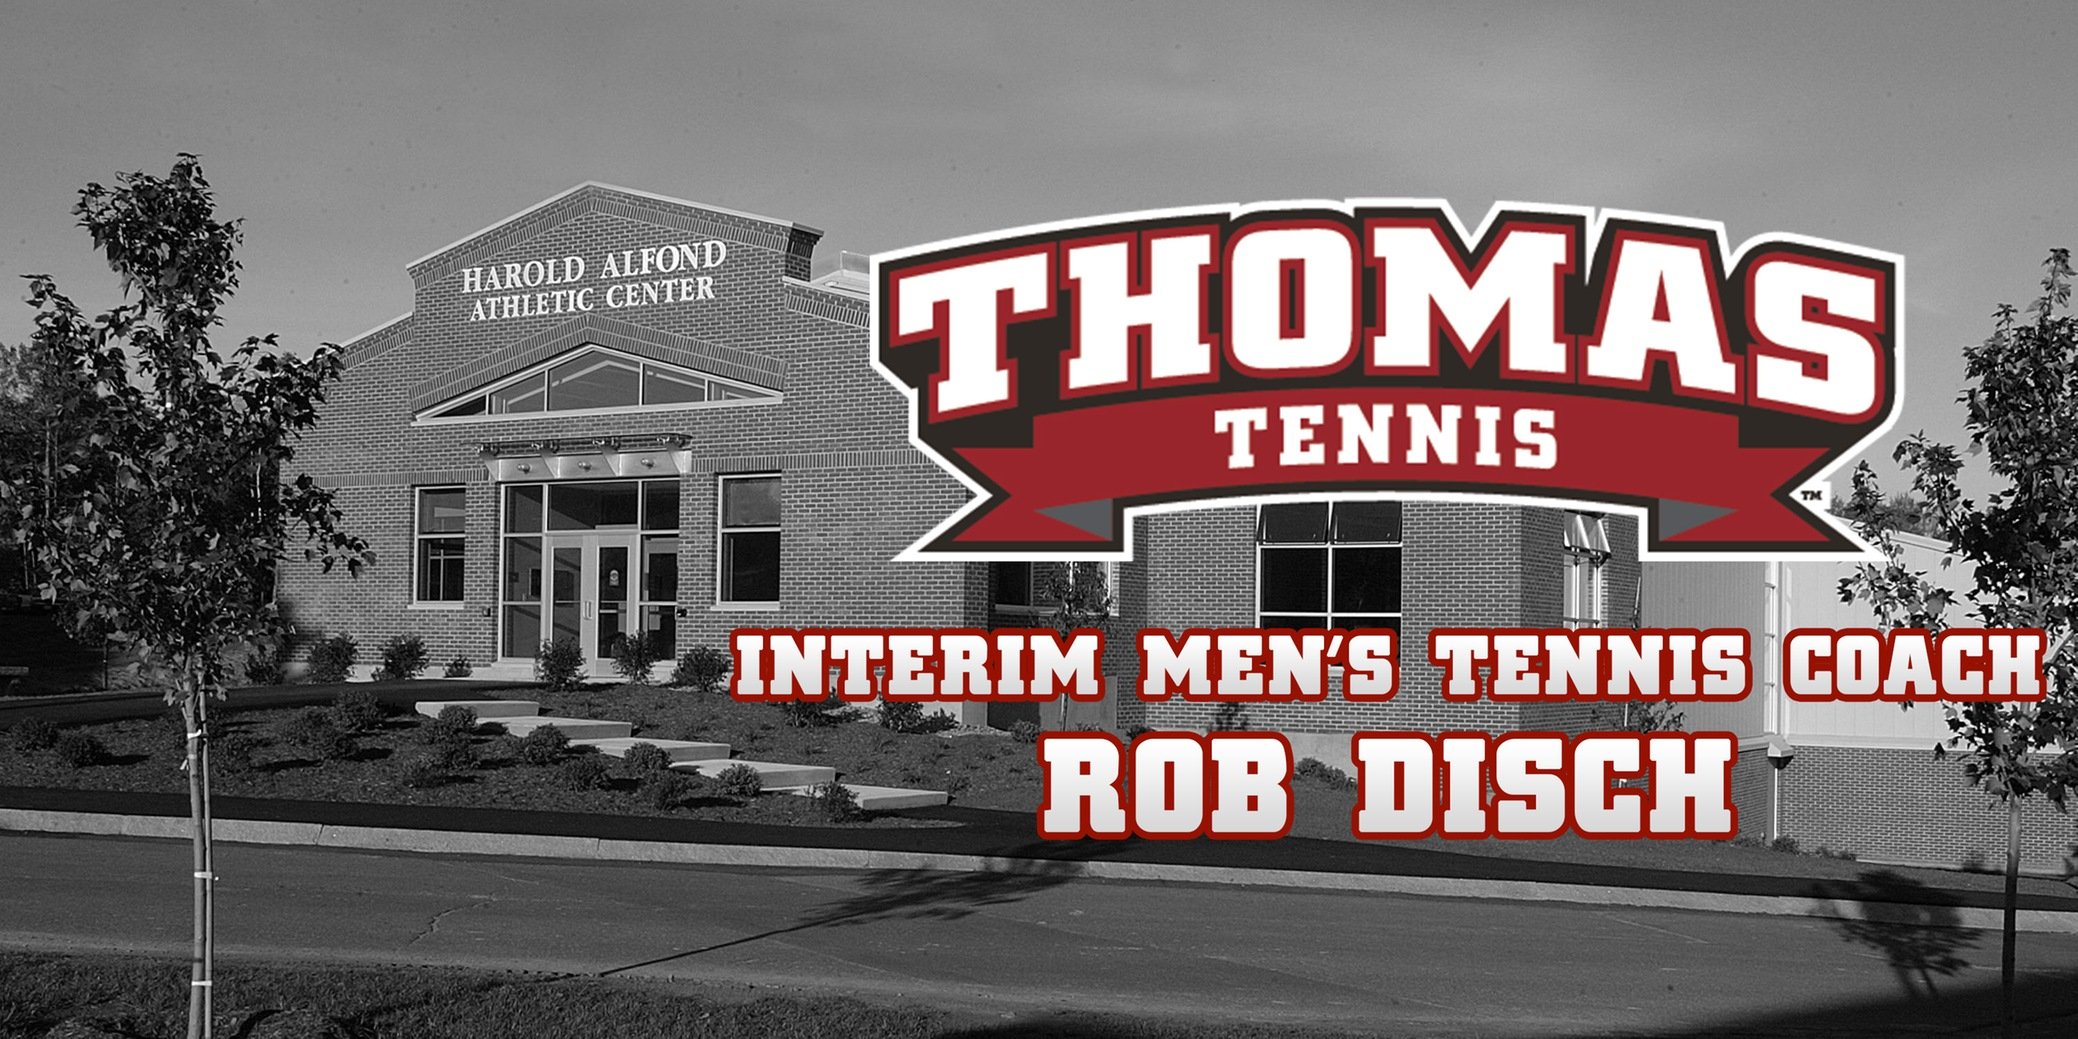 Rob Disch Named Interim Men's Tennis Coach